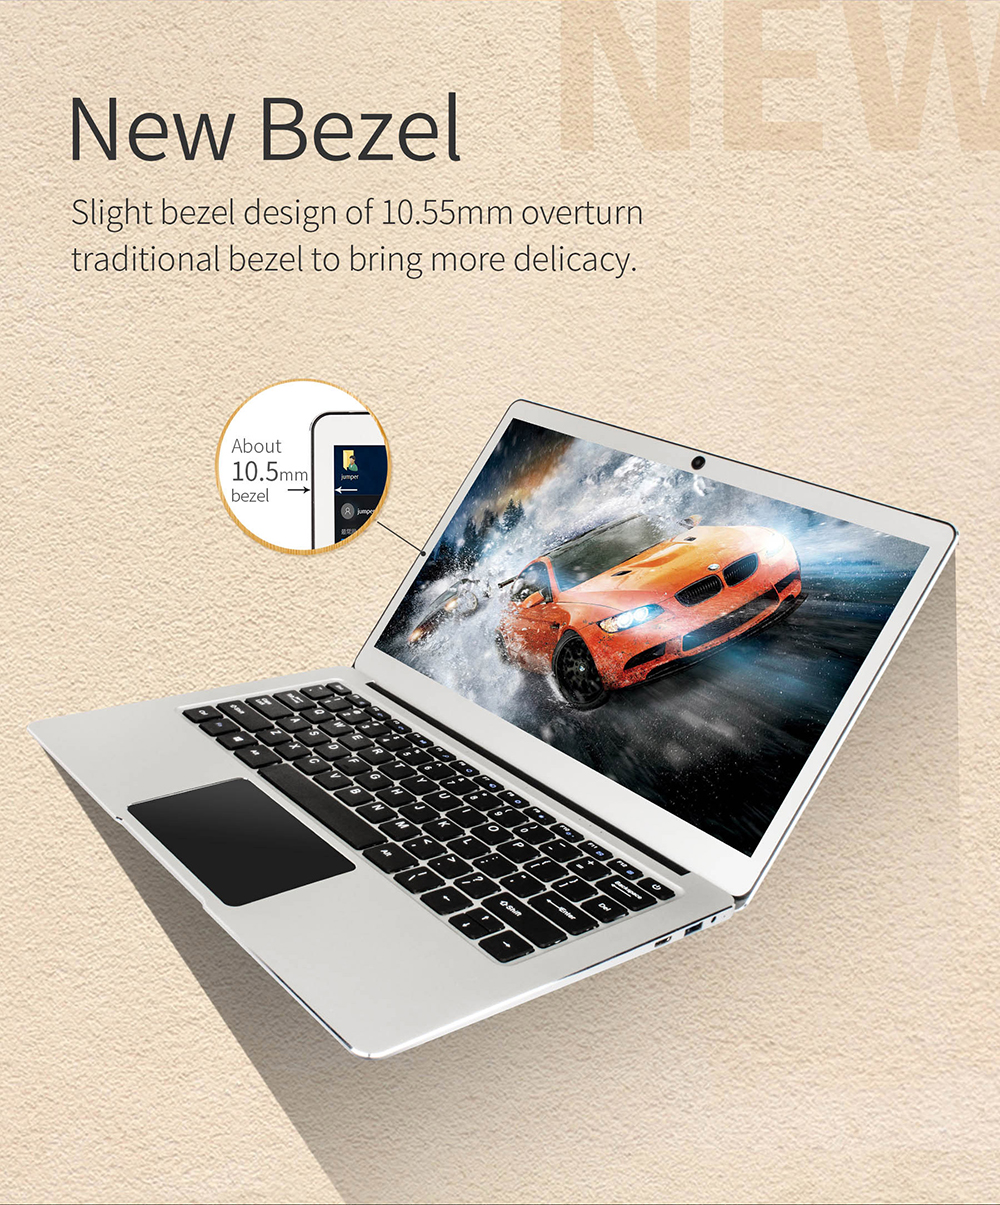 6  Jumper EZbook three Professional laptops 13.three Inch tablets Intel Apollo N3450 Quad Core 6GB DDR3 64GB eMMC Home windows 10 pocket book computador HTB11hVZRXXXXXXgXFXXq6xXFXXX0